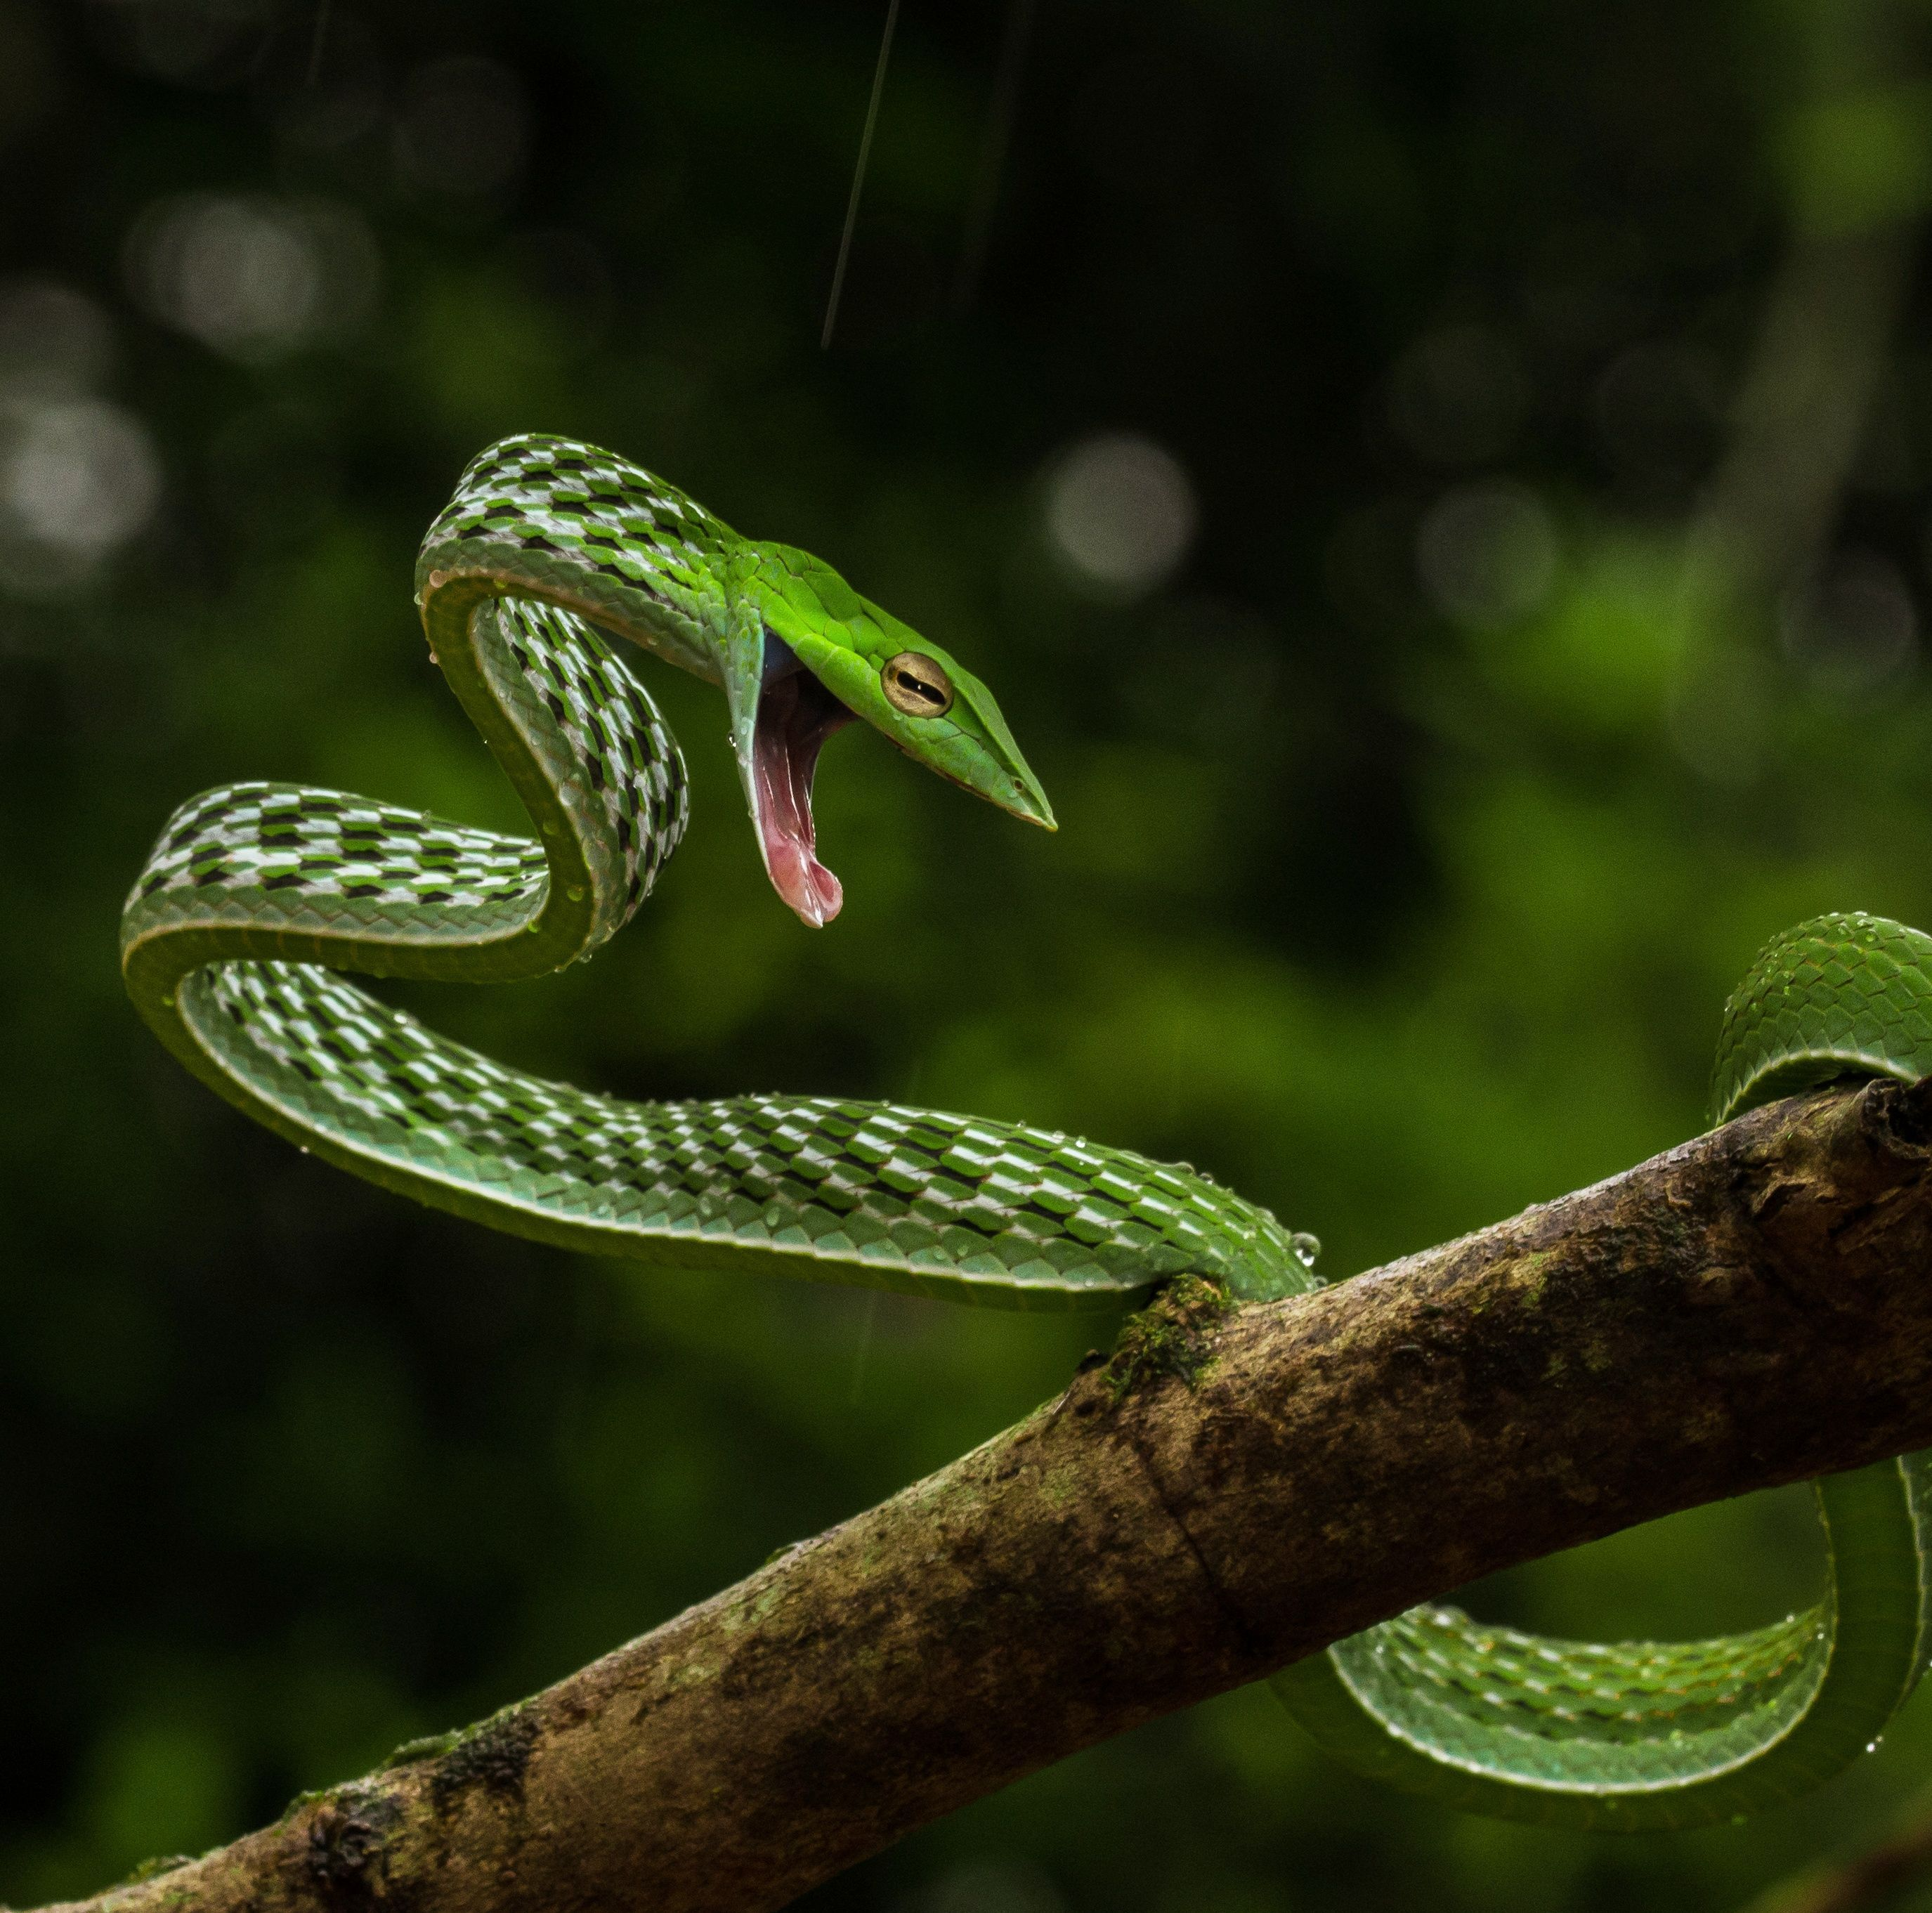 Photo of the Day | Places to Visit | Vine snake, Snake, Snake images